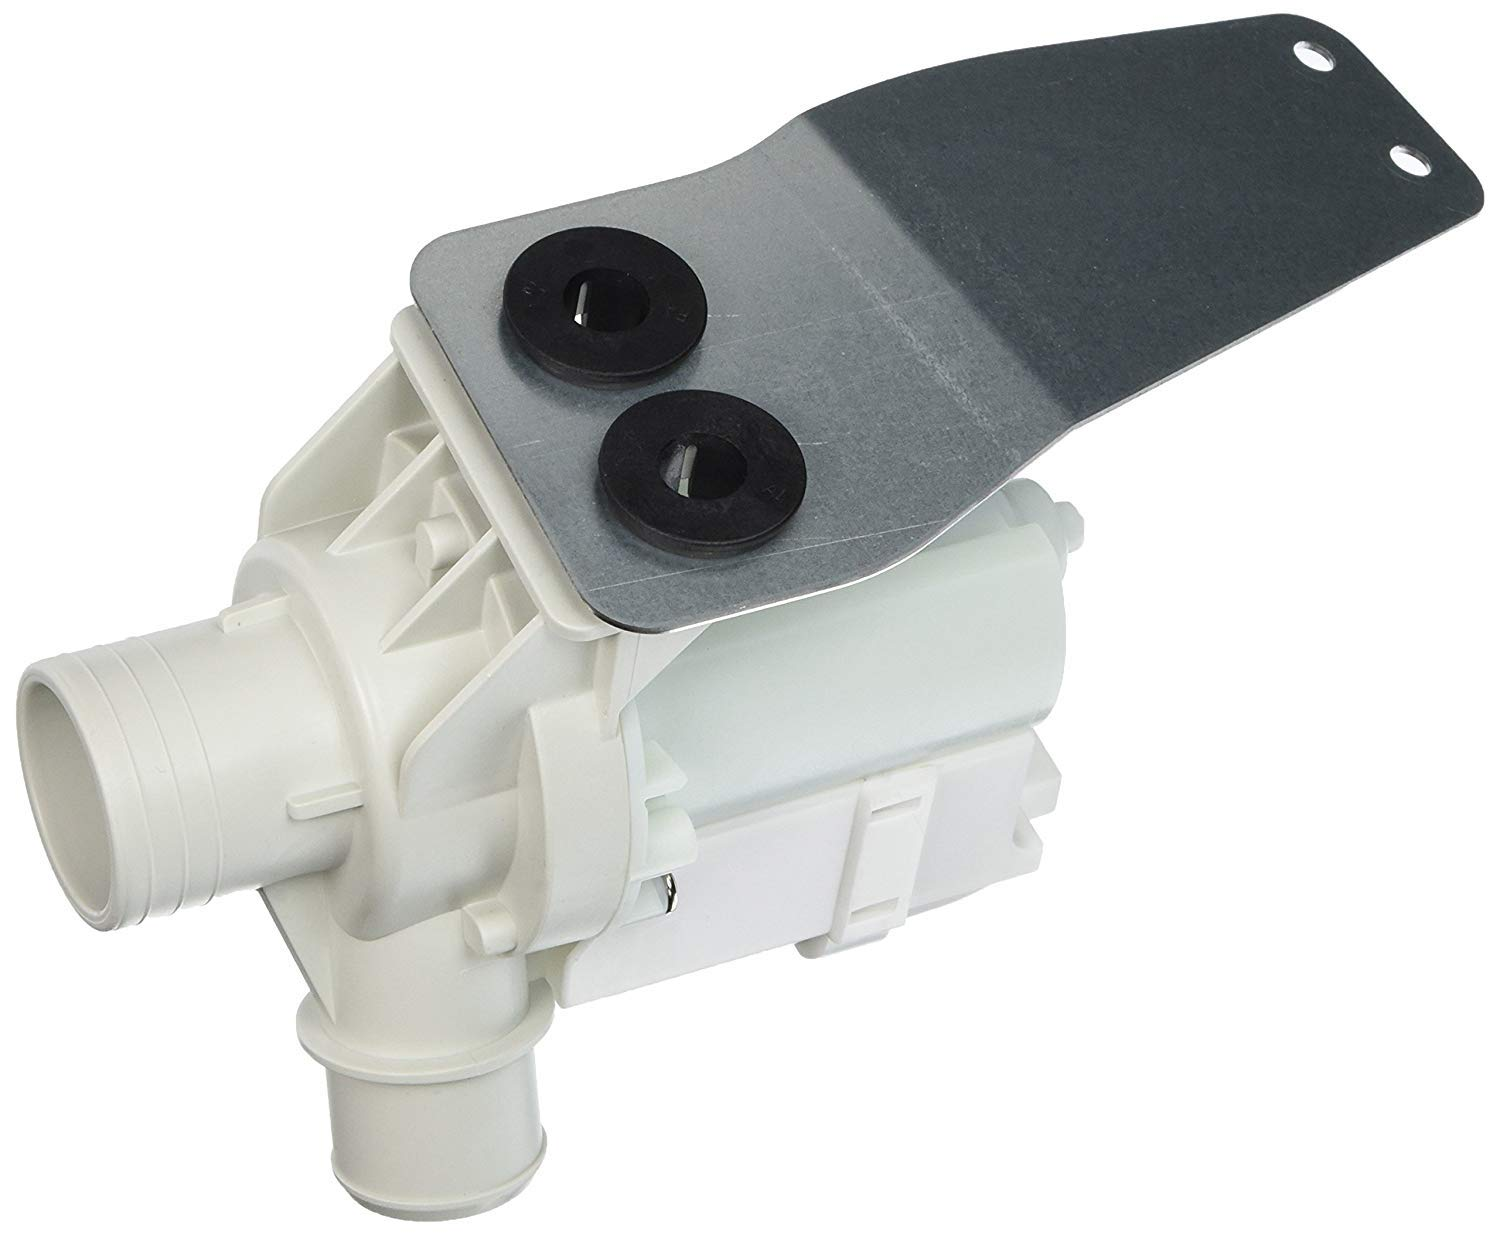 Global Products Washer Drain Pump Compatible GE Kenmore WH23X10030